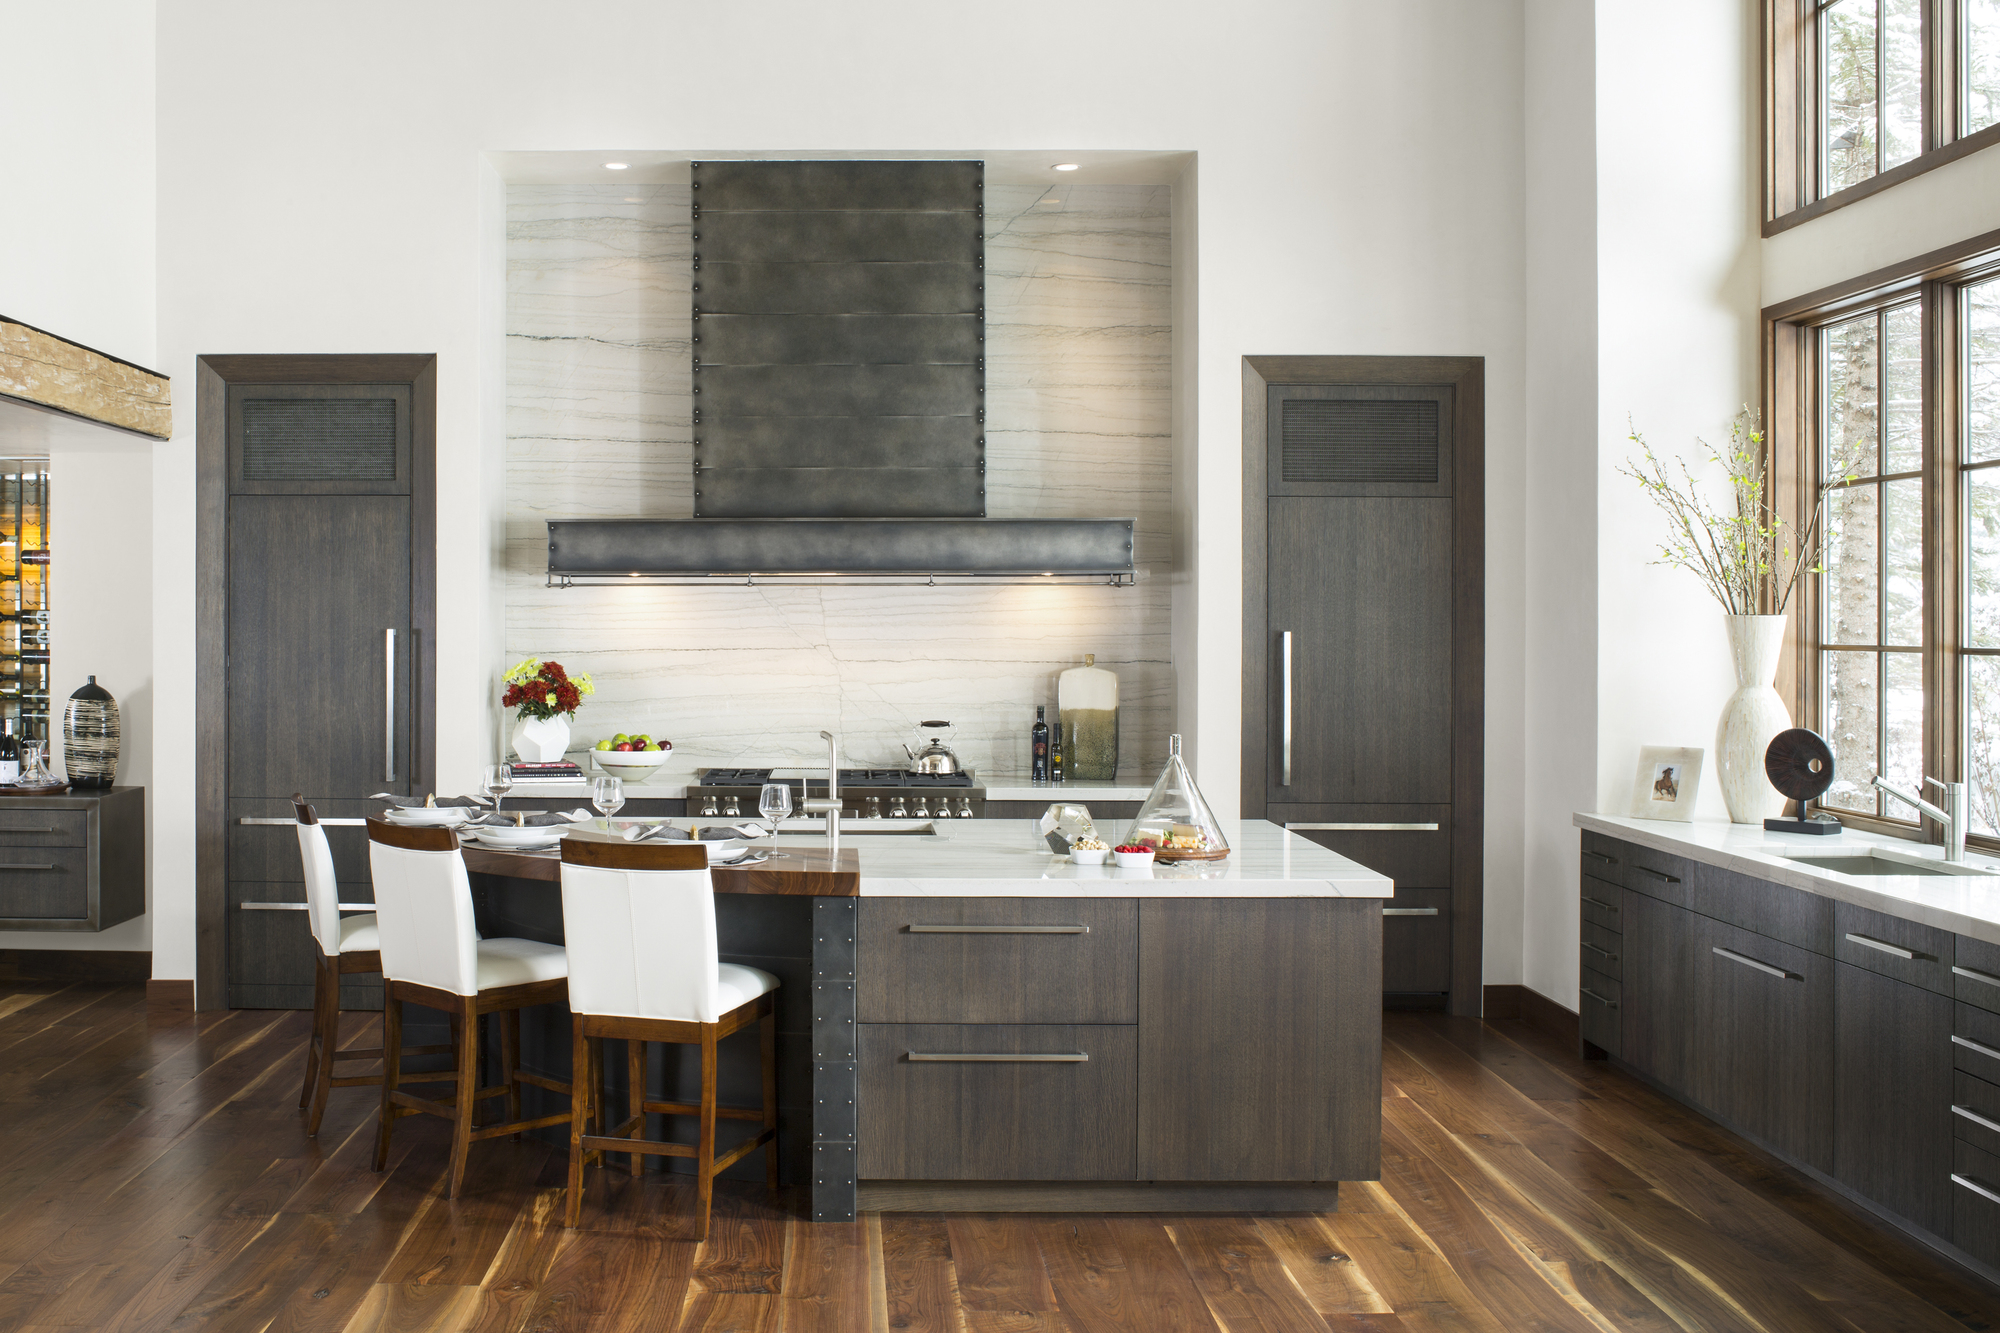 The Worlds Most Prominent Kitchen Design Contest Is Now Accepting